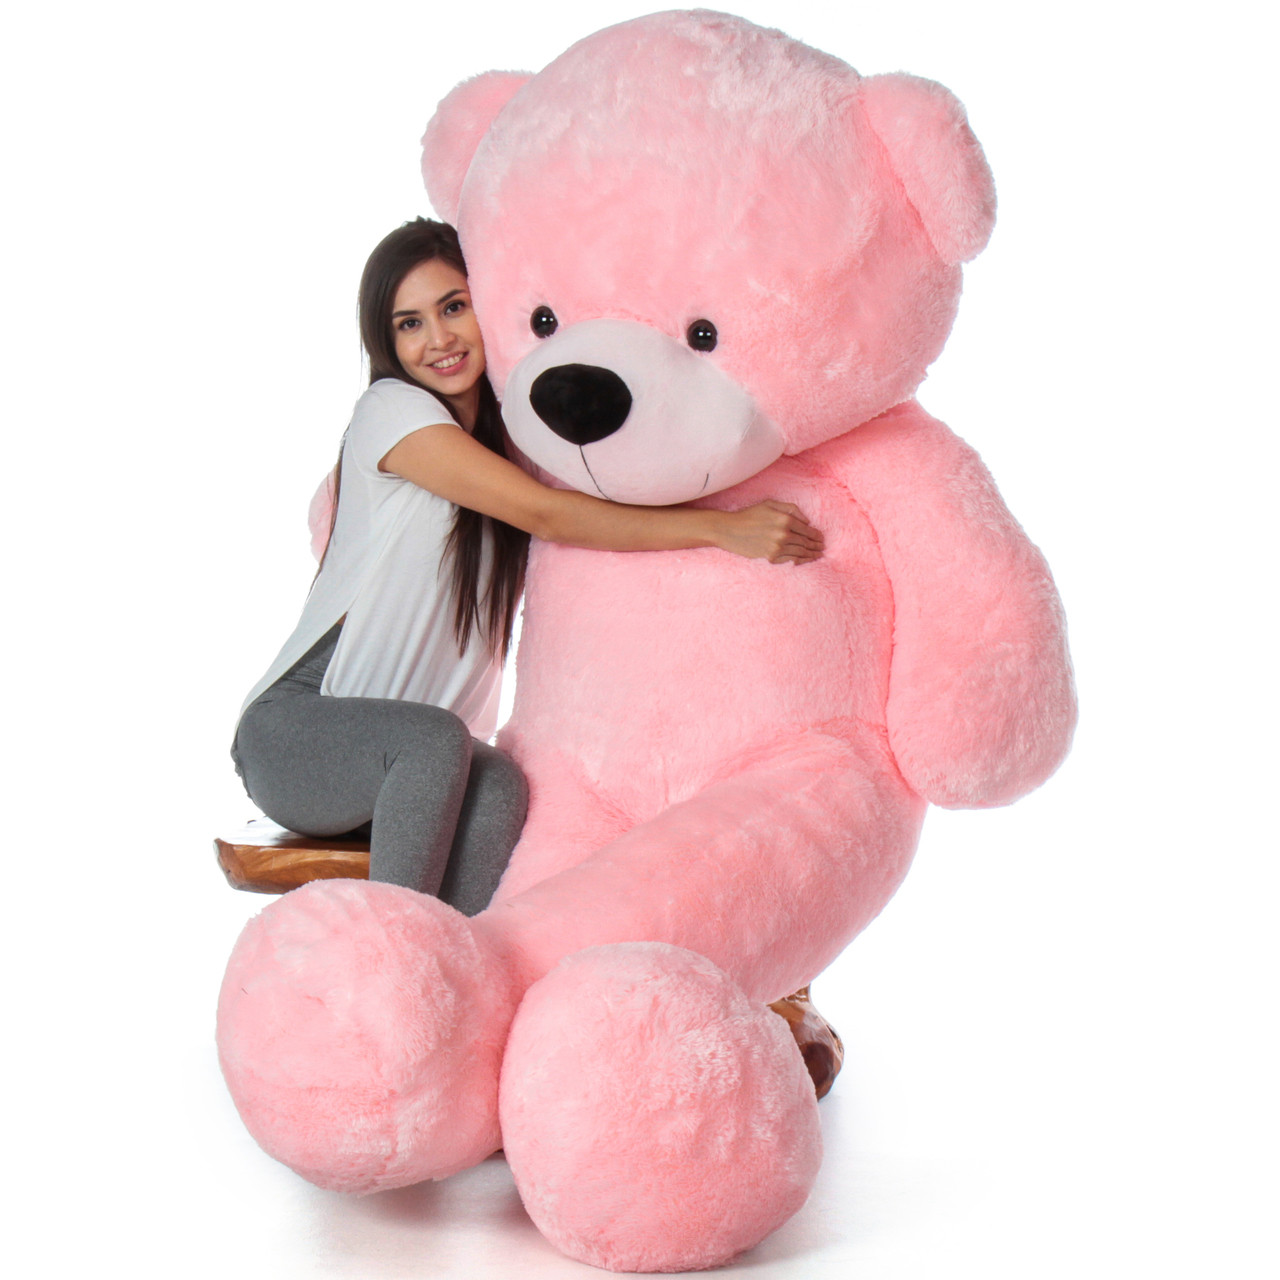 7215936f0db 7 Foot Life Size Pink Giant Teddy Bear Cuddles - The BIGGEST Teddy Bear!